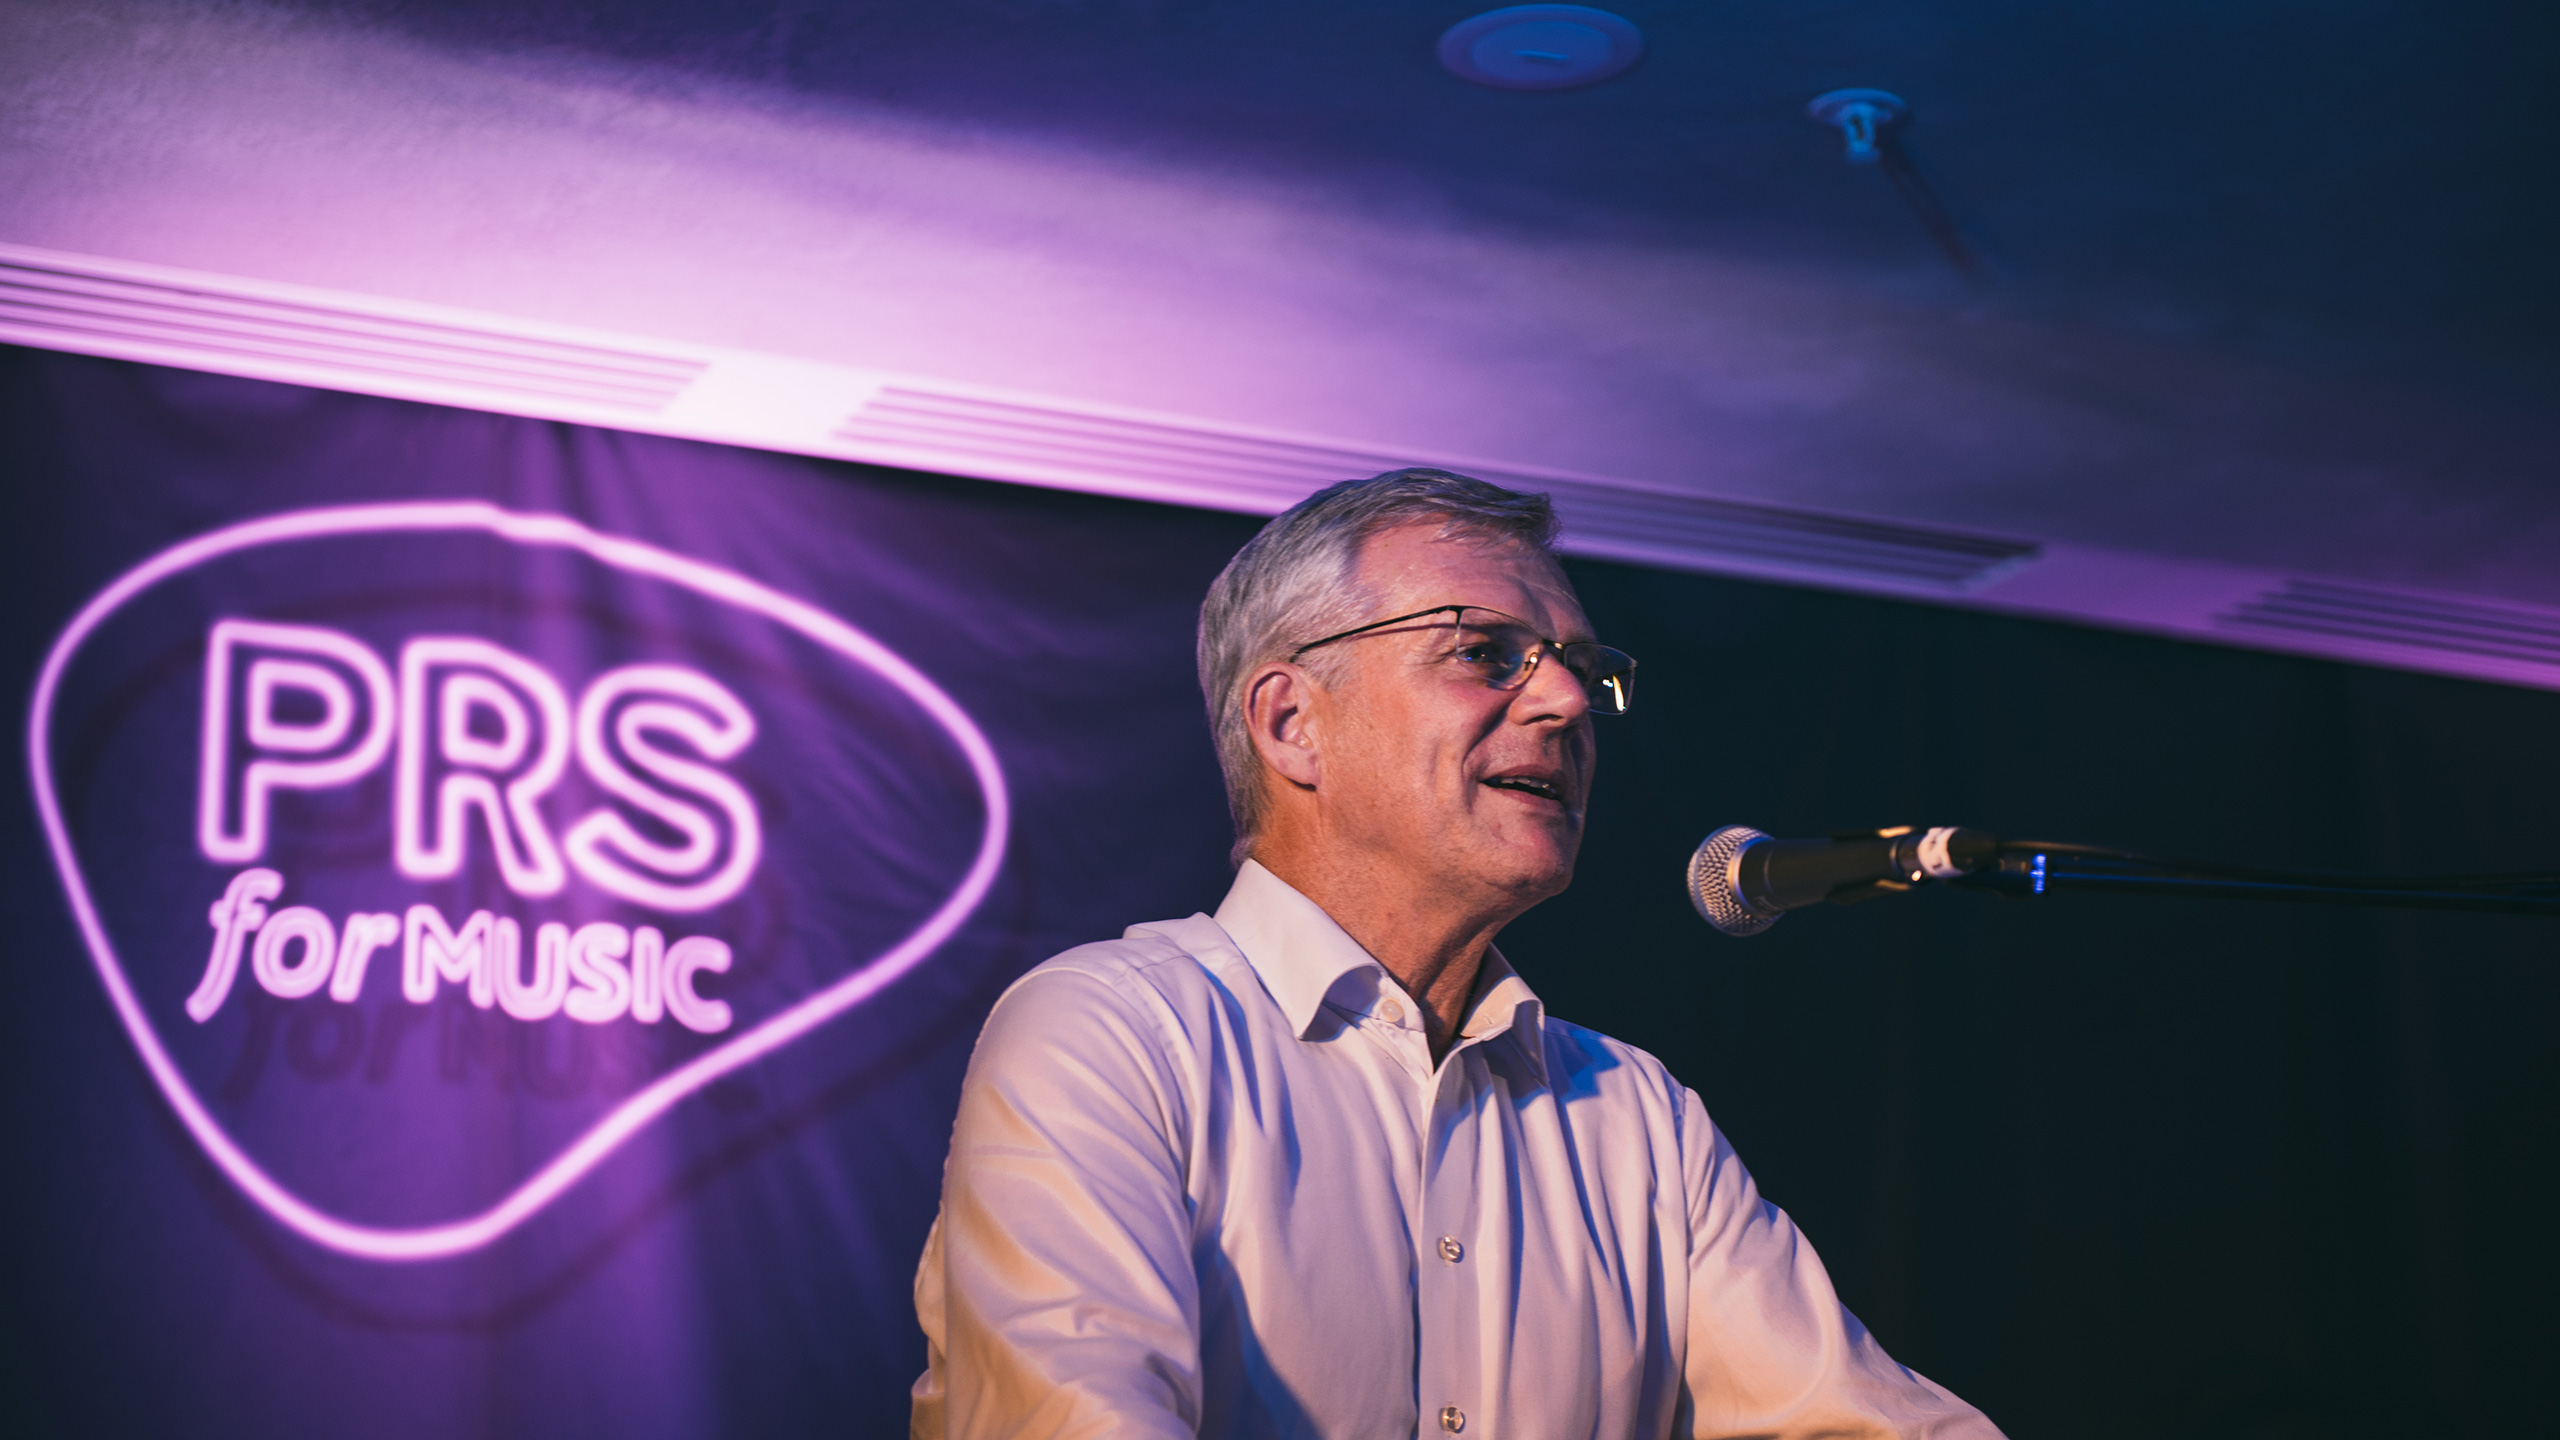 Robert Ashcroft gives a speech at PRS for Music Presents